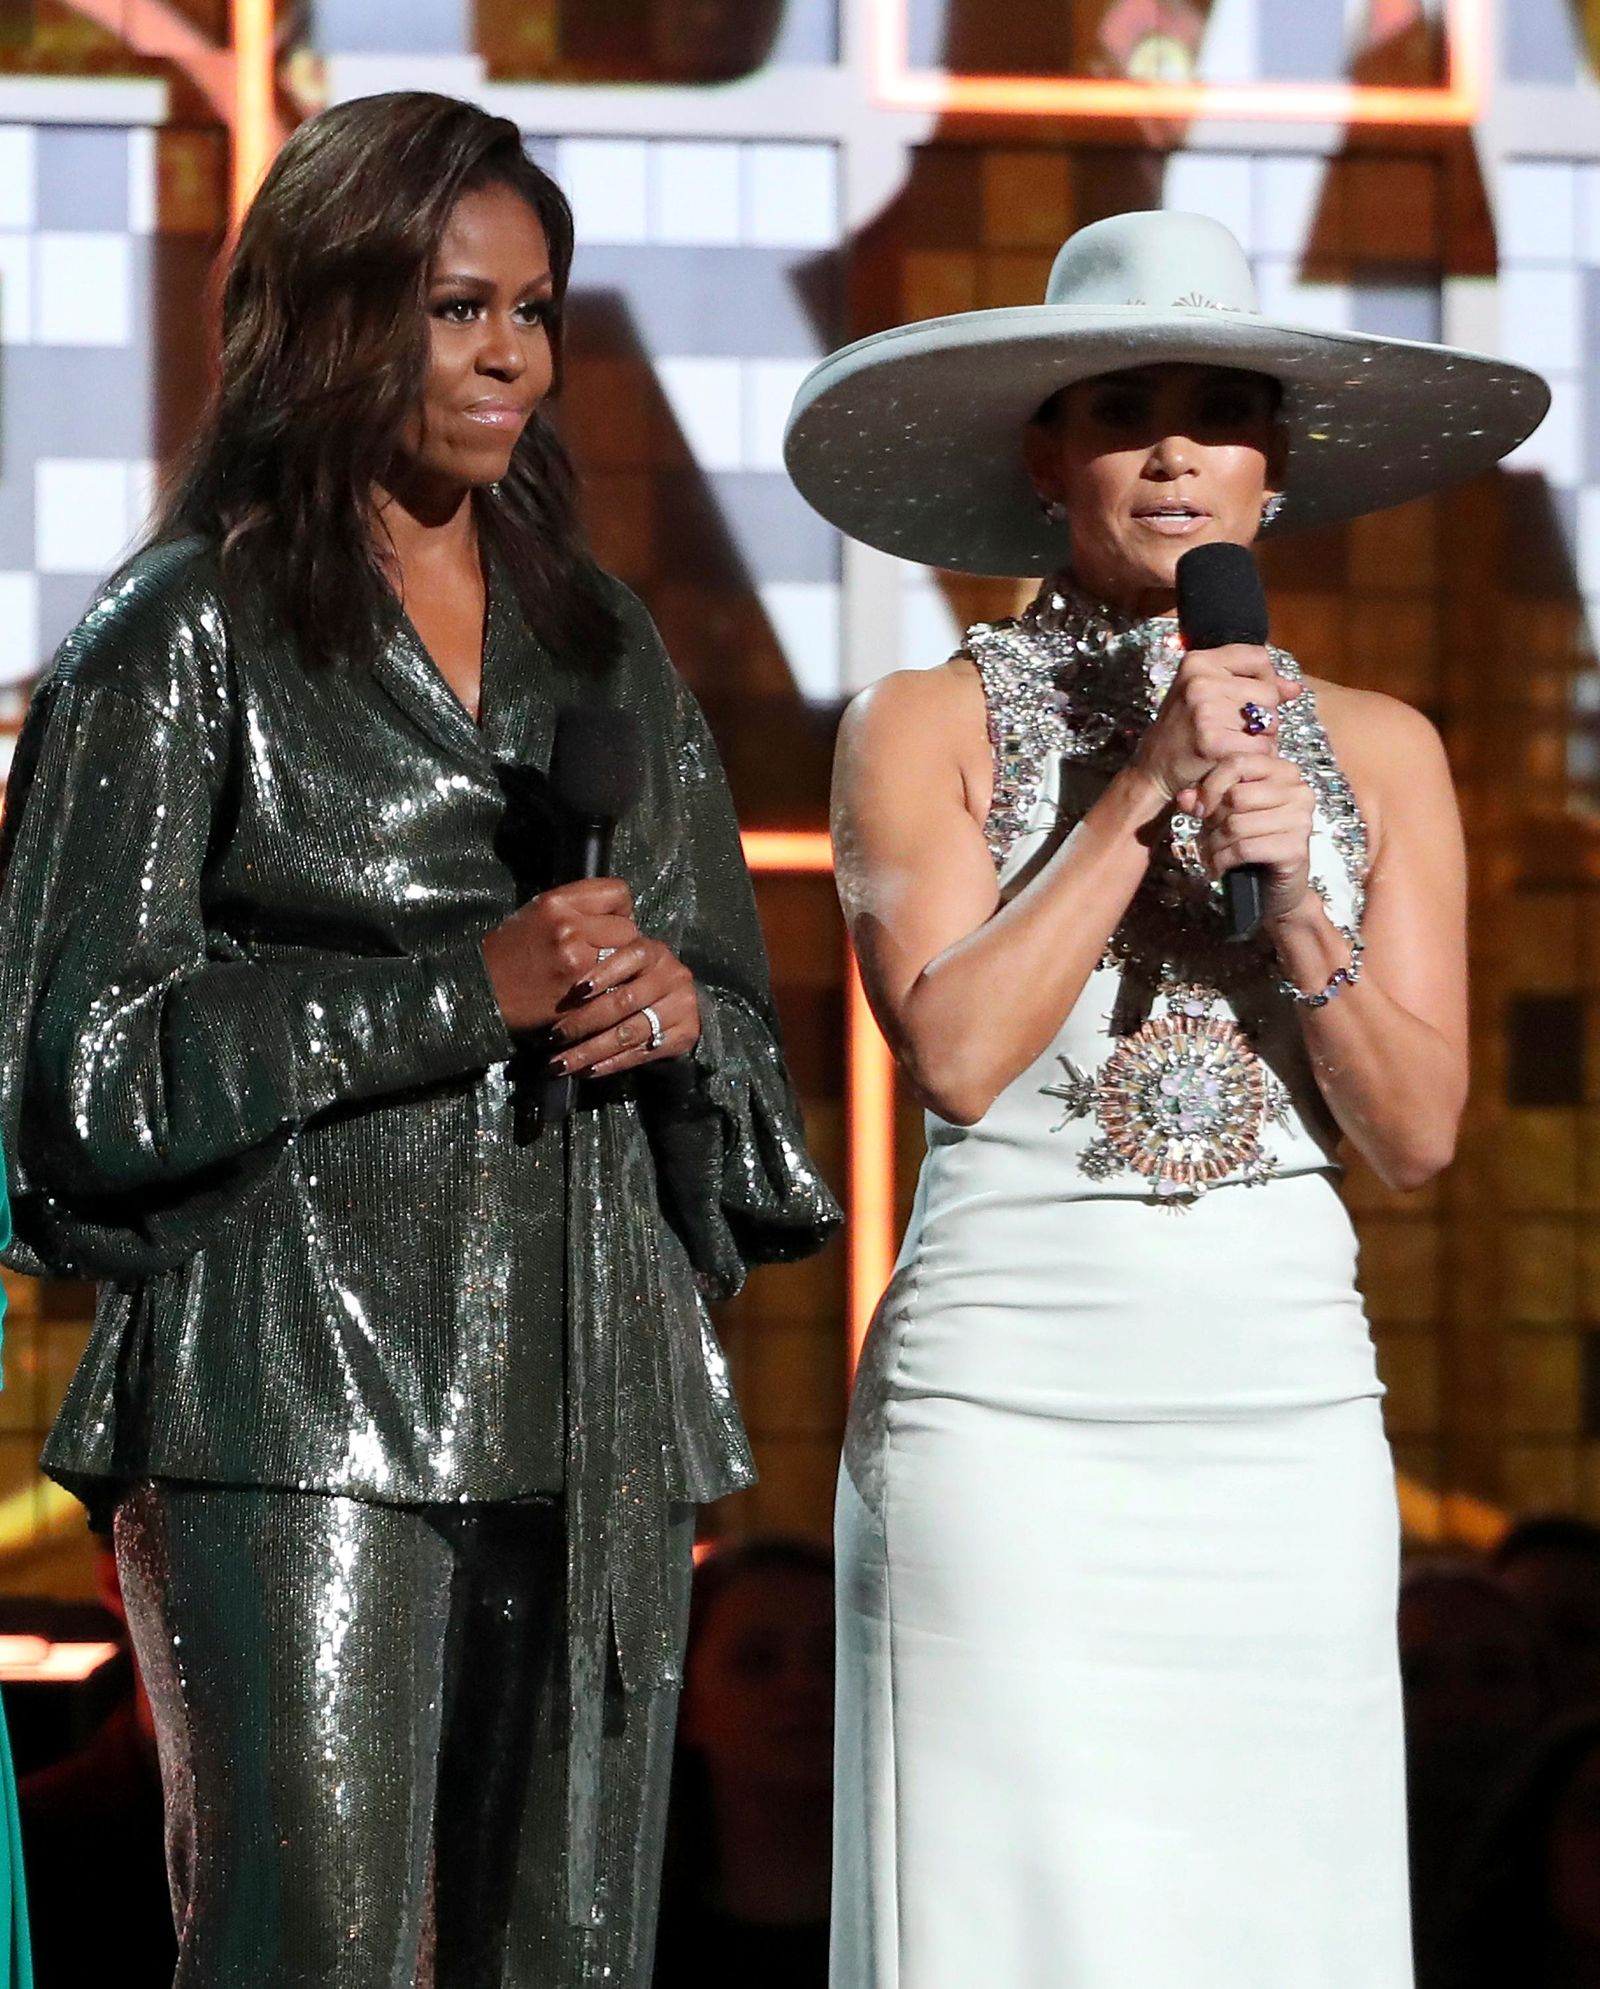 Michelle Obama, left, and Jennifer Lopez speak at the 61st annual Grammy Awards on Sunday, Feb. 10, 2019, in Los Angeles. (Photo by Matt Sayles/Invision/AP)